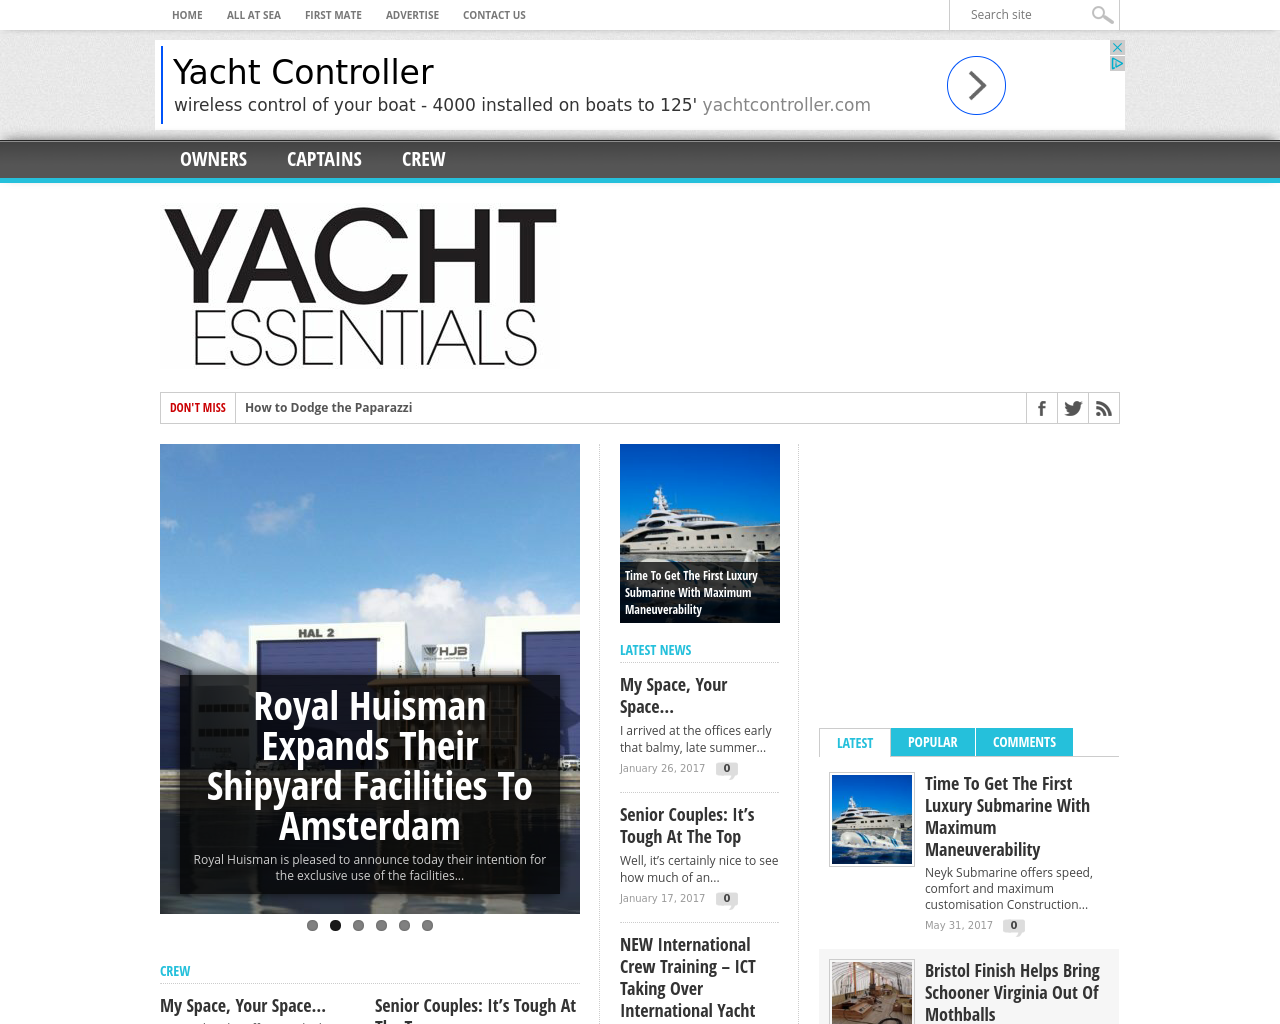 Yacht-Essentials-Advertising-Reviews-Pricing